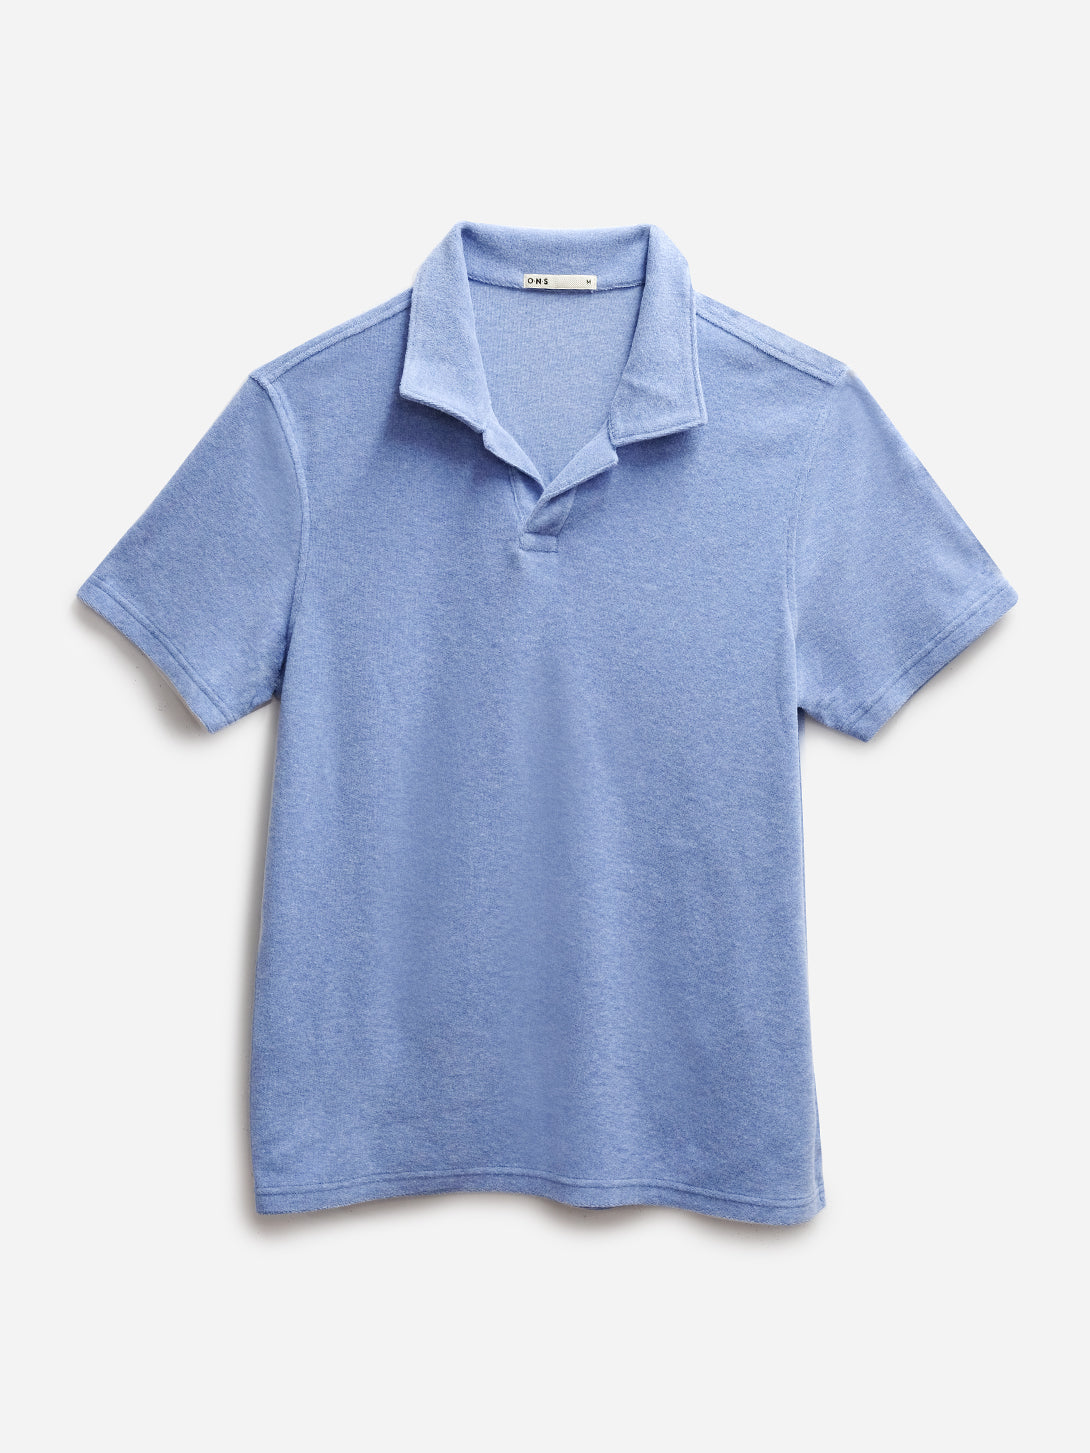 BLUE REVERSE TERRY POLO ONS MENS KNITS